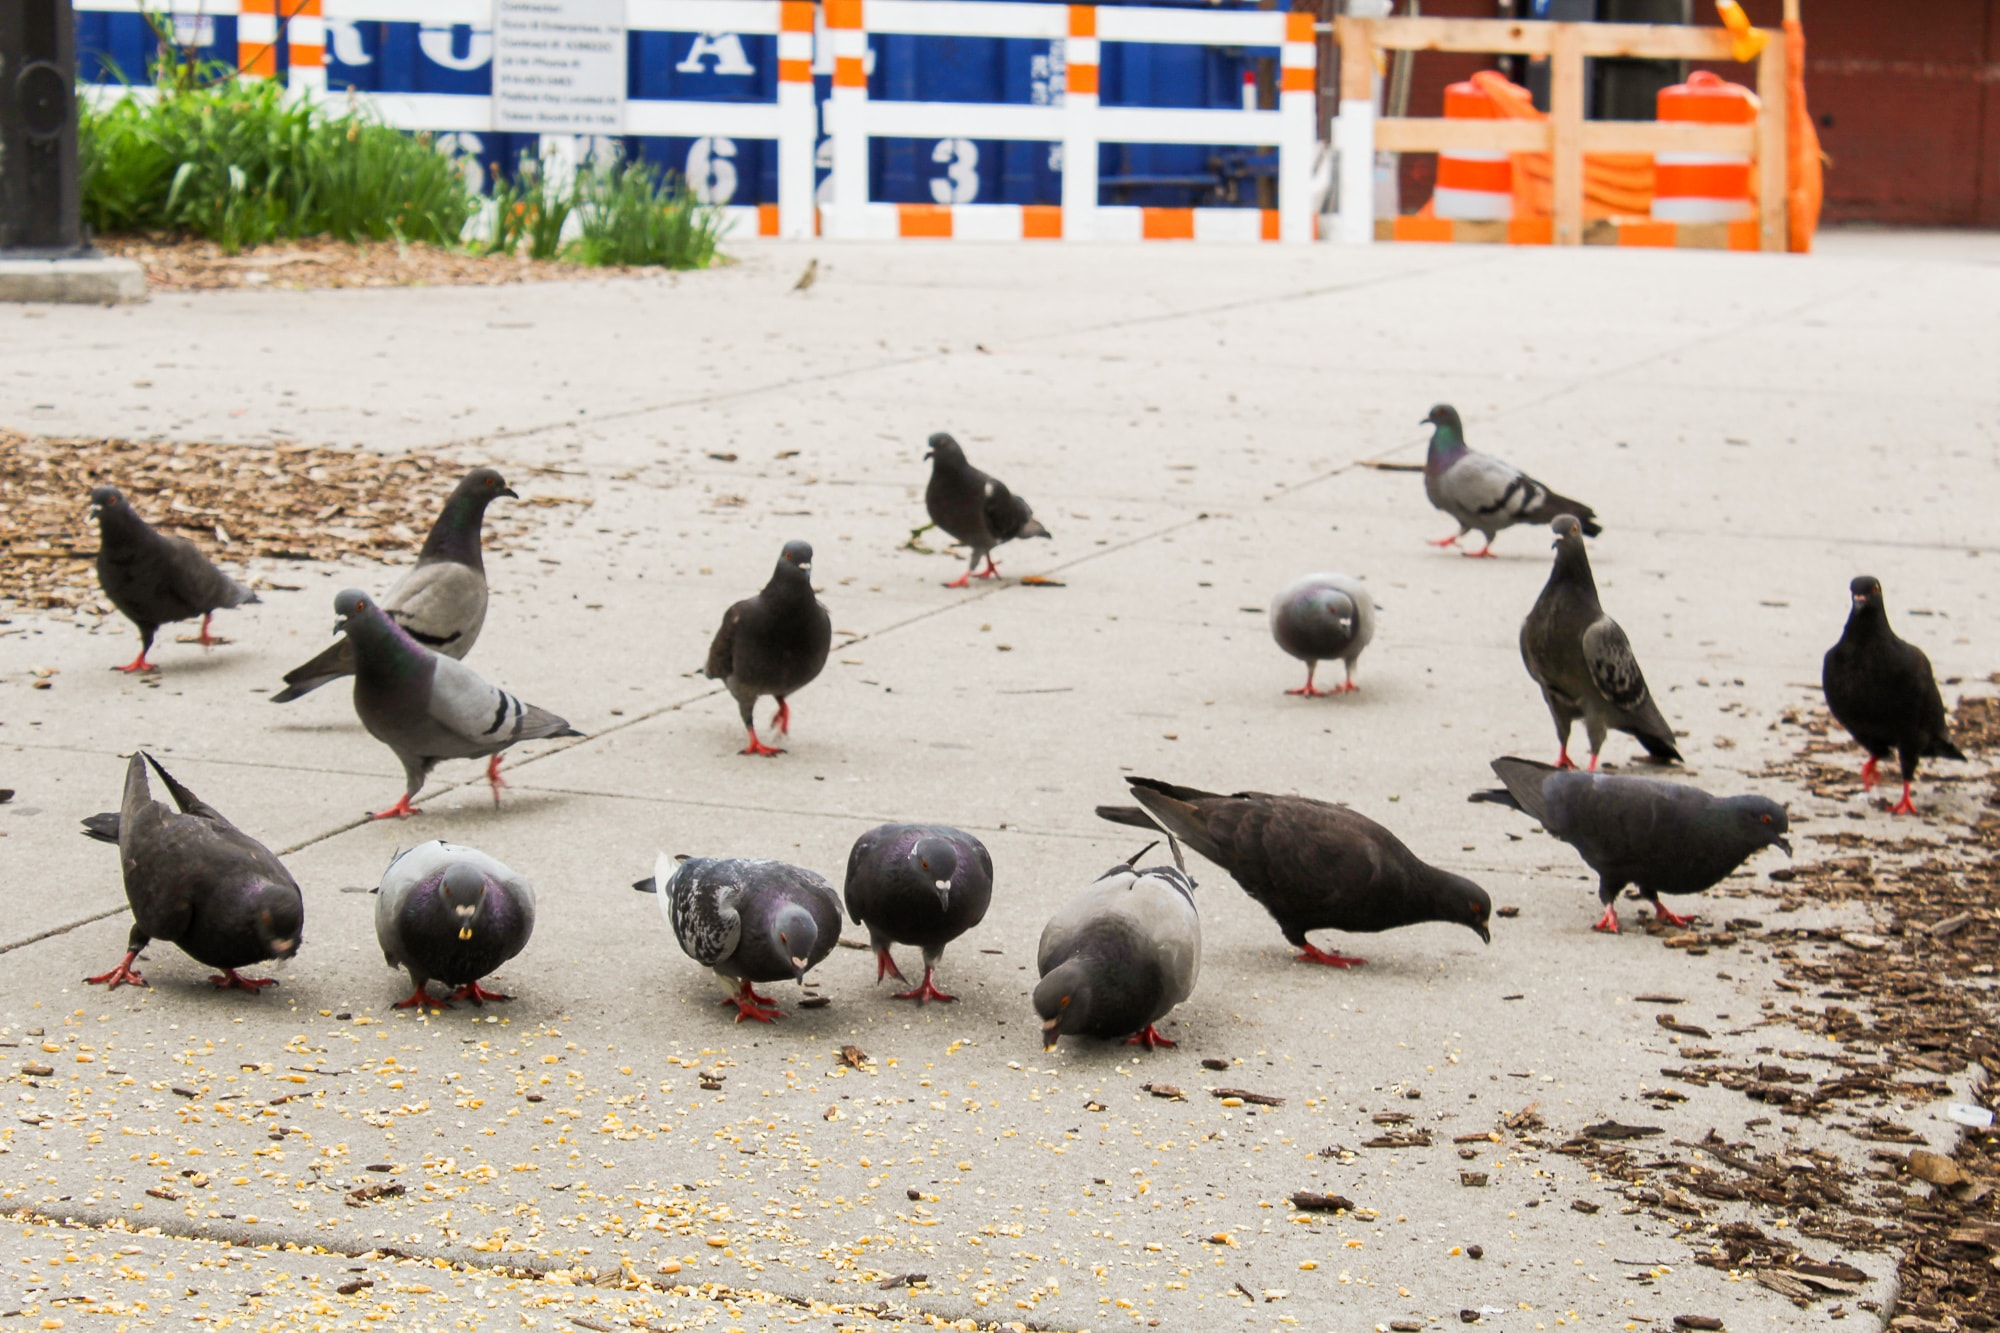 Pigeons. Photo by Christie Taylor for Science Friday